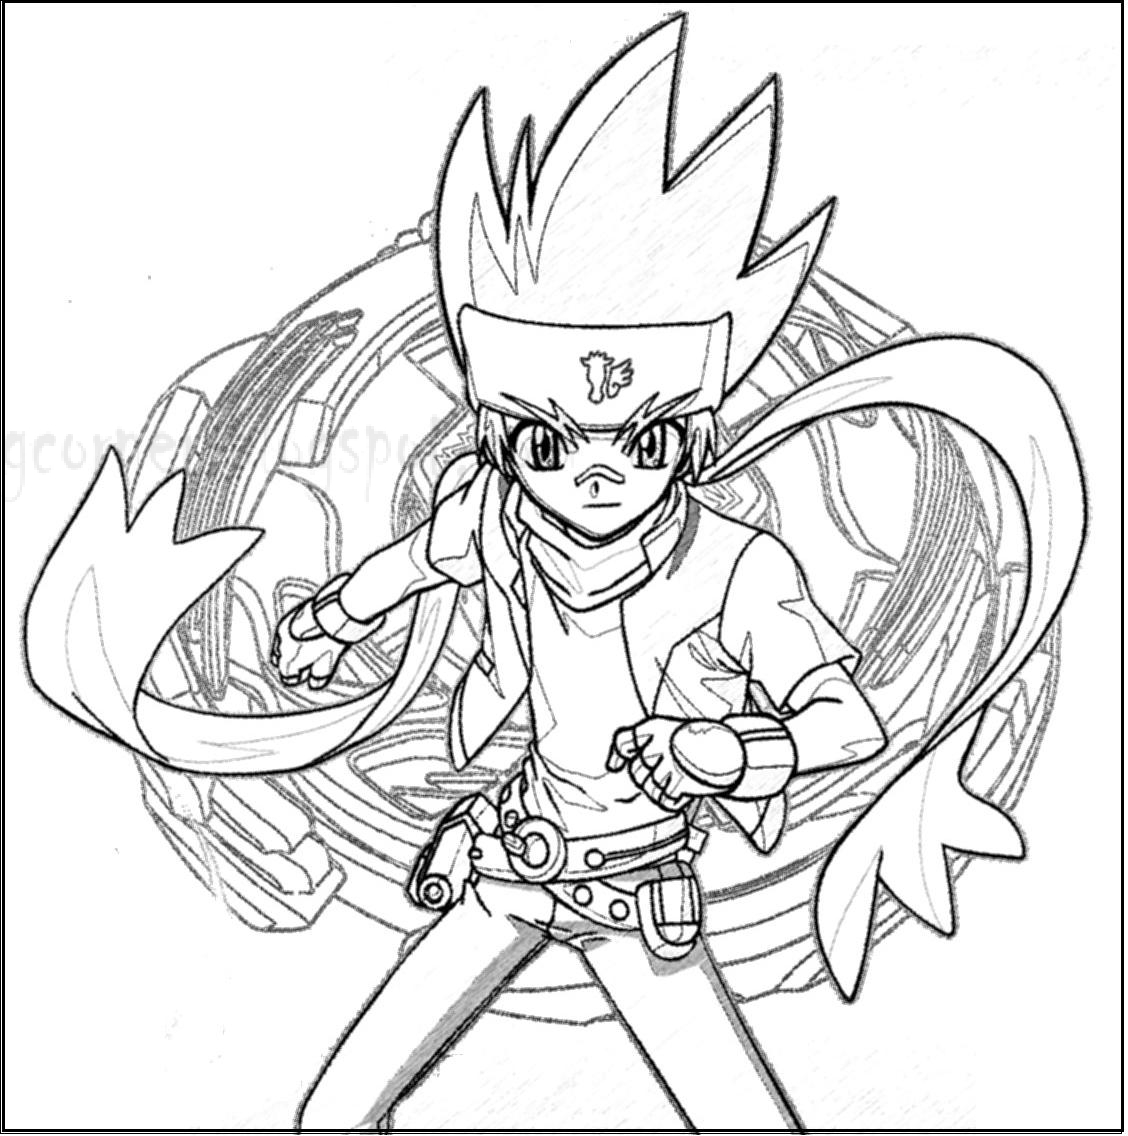 coloring beyblade free printable beyblade coloring pages for kids cool2bkids beyblade coloring